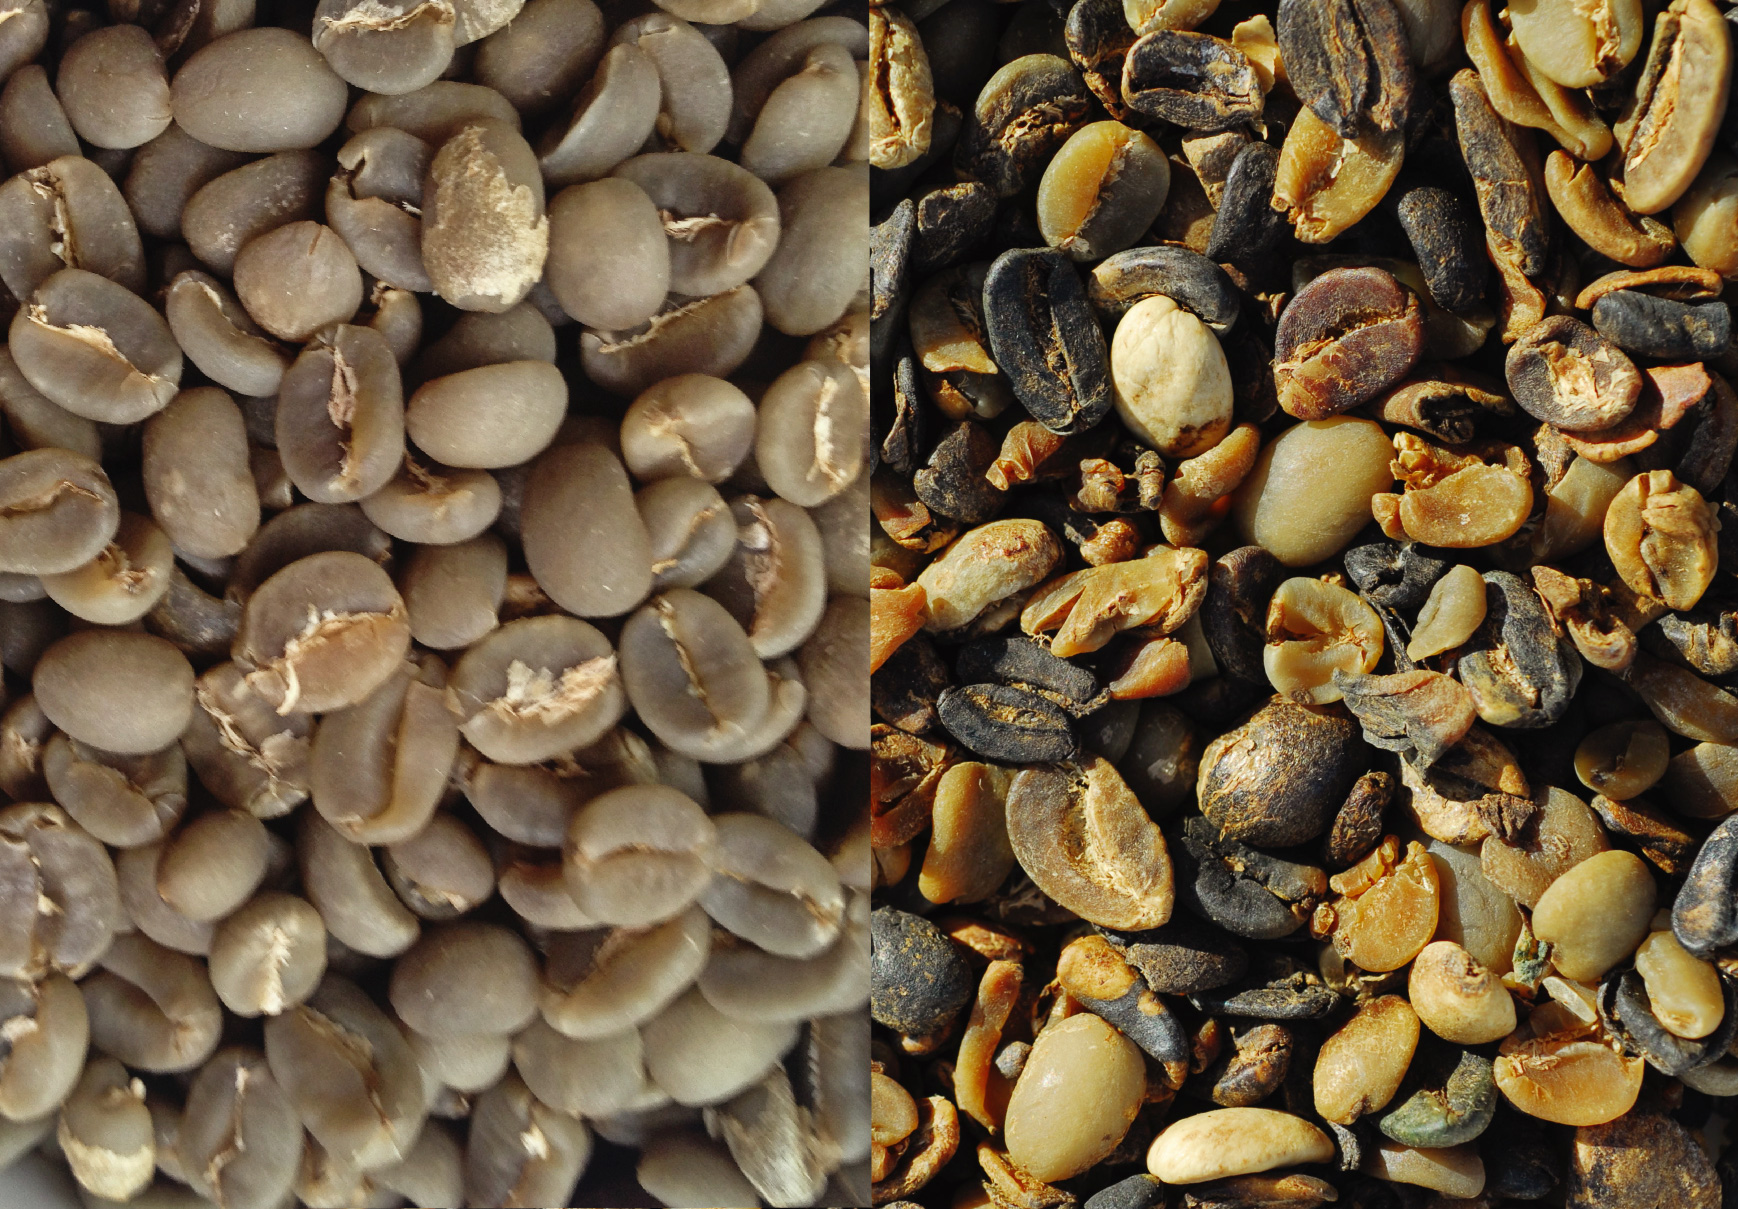 Figure 1.1. Both pictures are of the same bean. The left picture is the highest grade, which is sold as speciality coffee and the right picture is the worst grade of commodity coffee. All beans are 100% arabica.